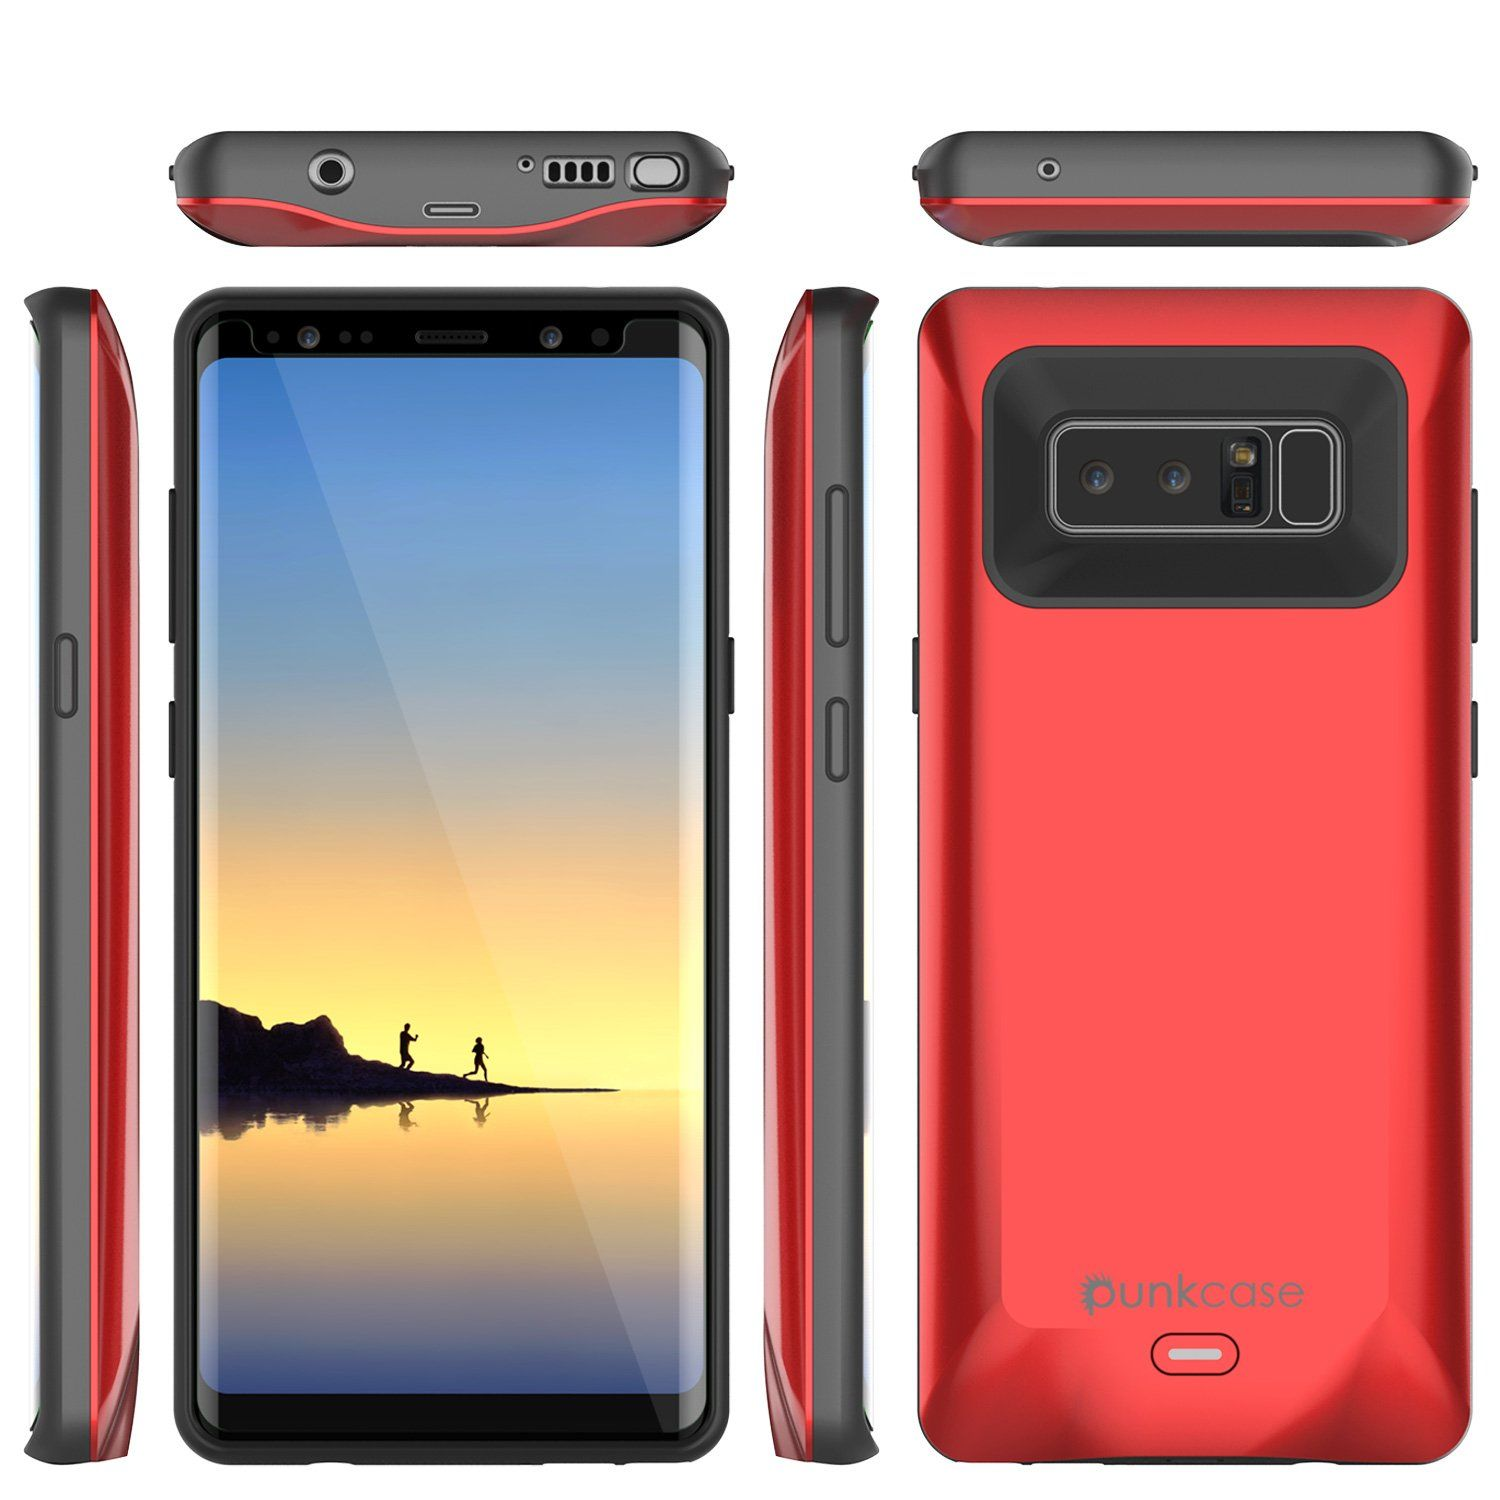 huge discount 815aa 447e2 Galaxy Note 8 5000mAH Battery Charger W/ USB Port Slim Case [Red] in ...